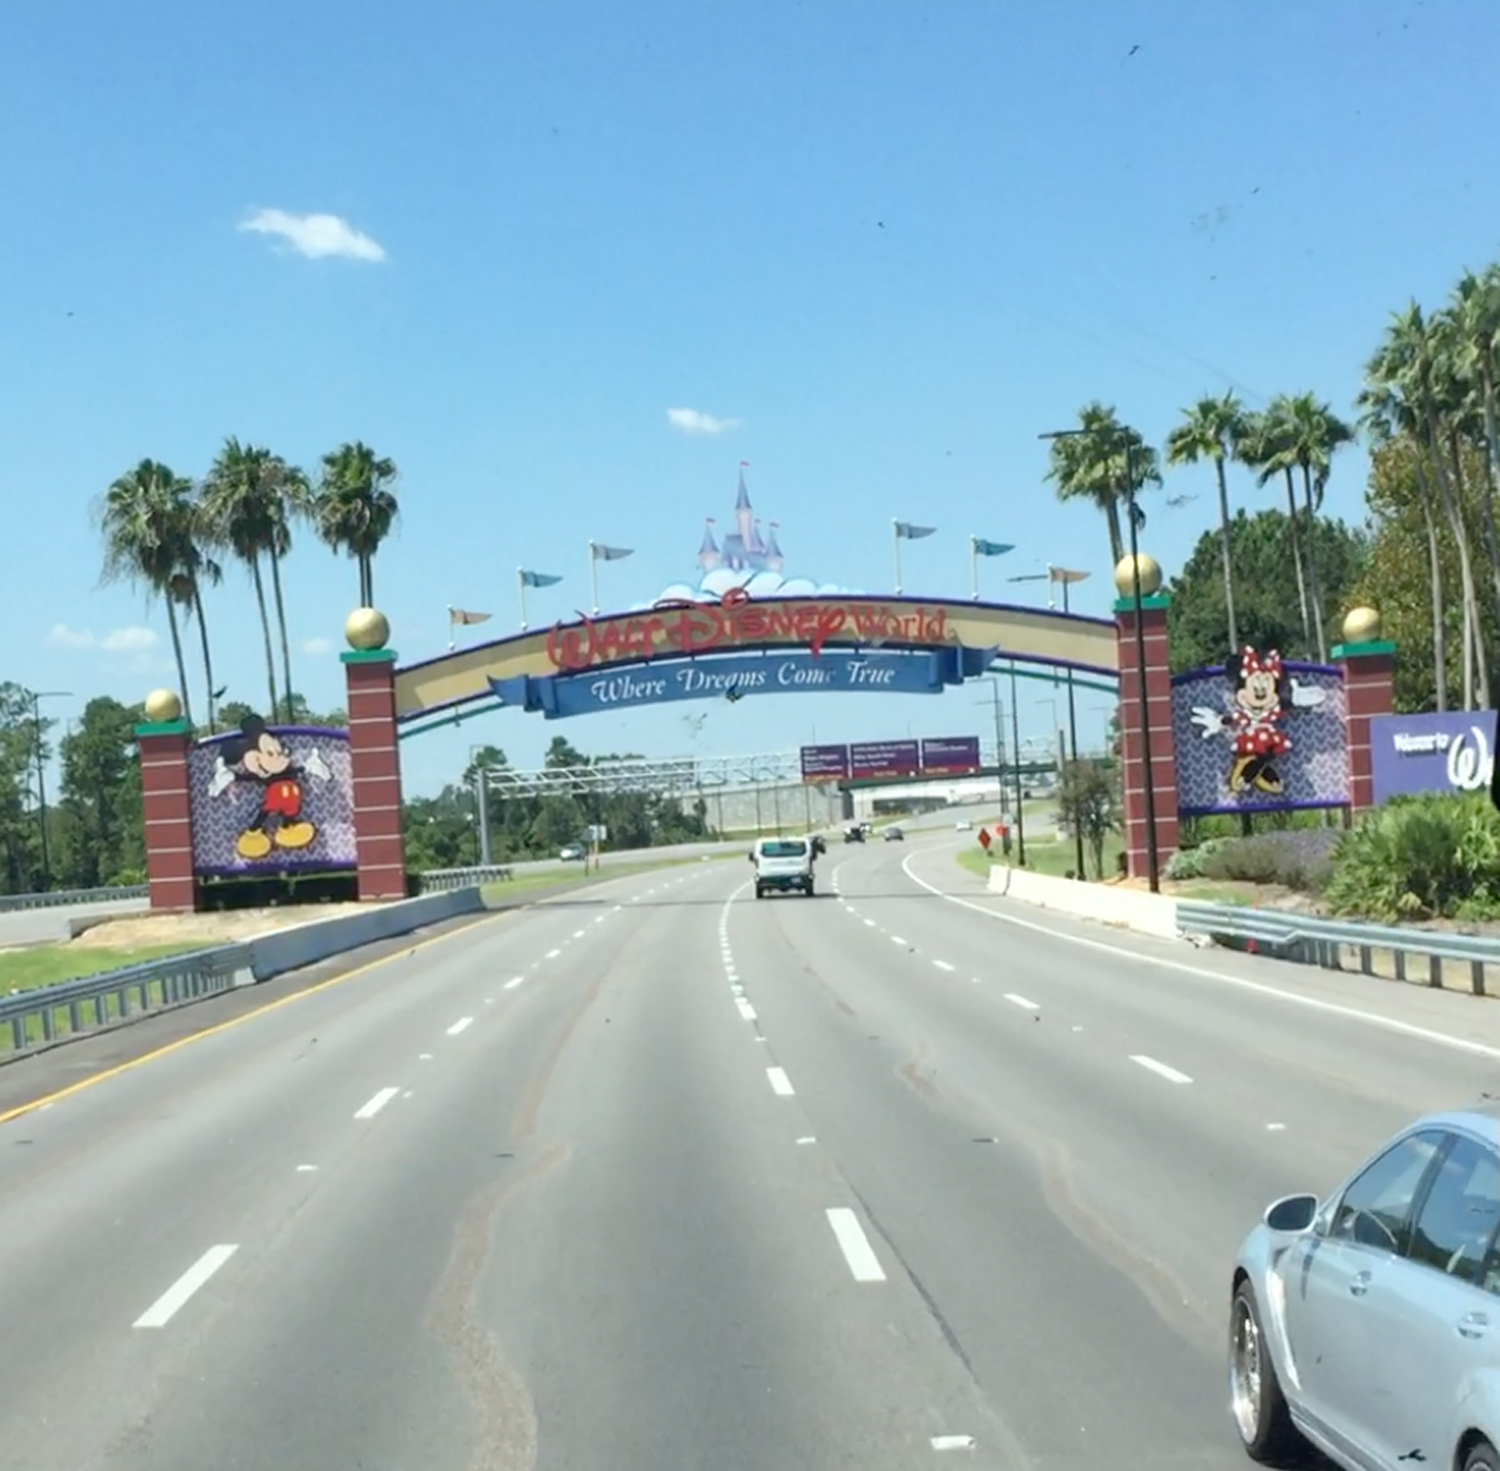 You can't help but get excited as you pass under the Disney sign, welcoming you to the place where dreams come true!